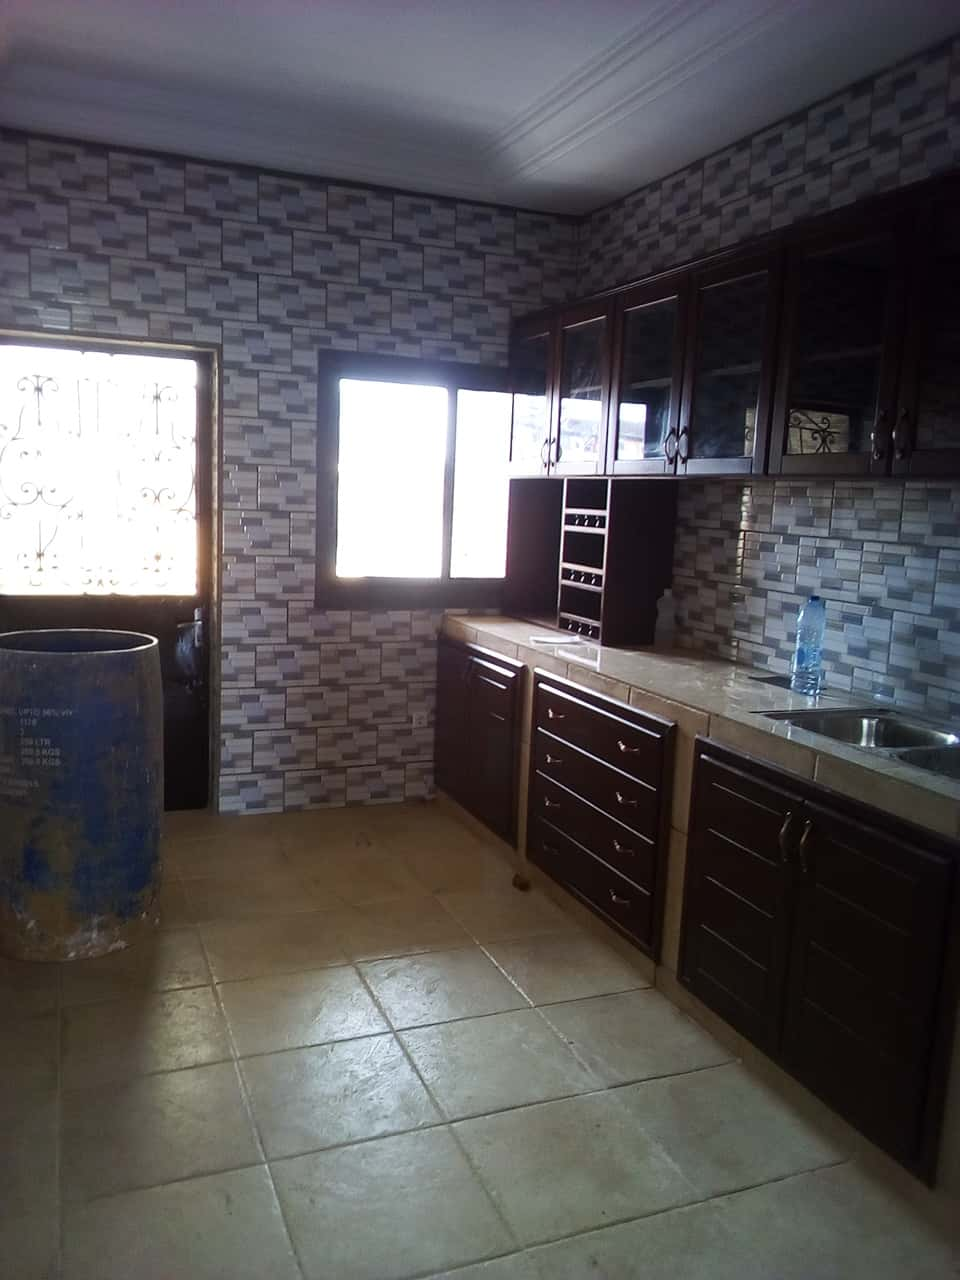 Apartment to rent - Yaoundé, Bastos, pas  loin de lambassade despagne - 1 living room(s), 3 bedroom(s), 3 bathroom(s) - 1 000 000 FCFA / month